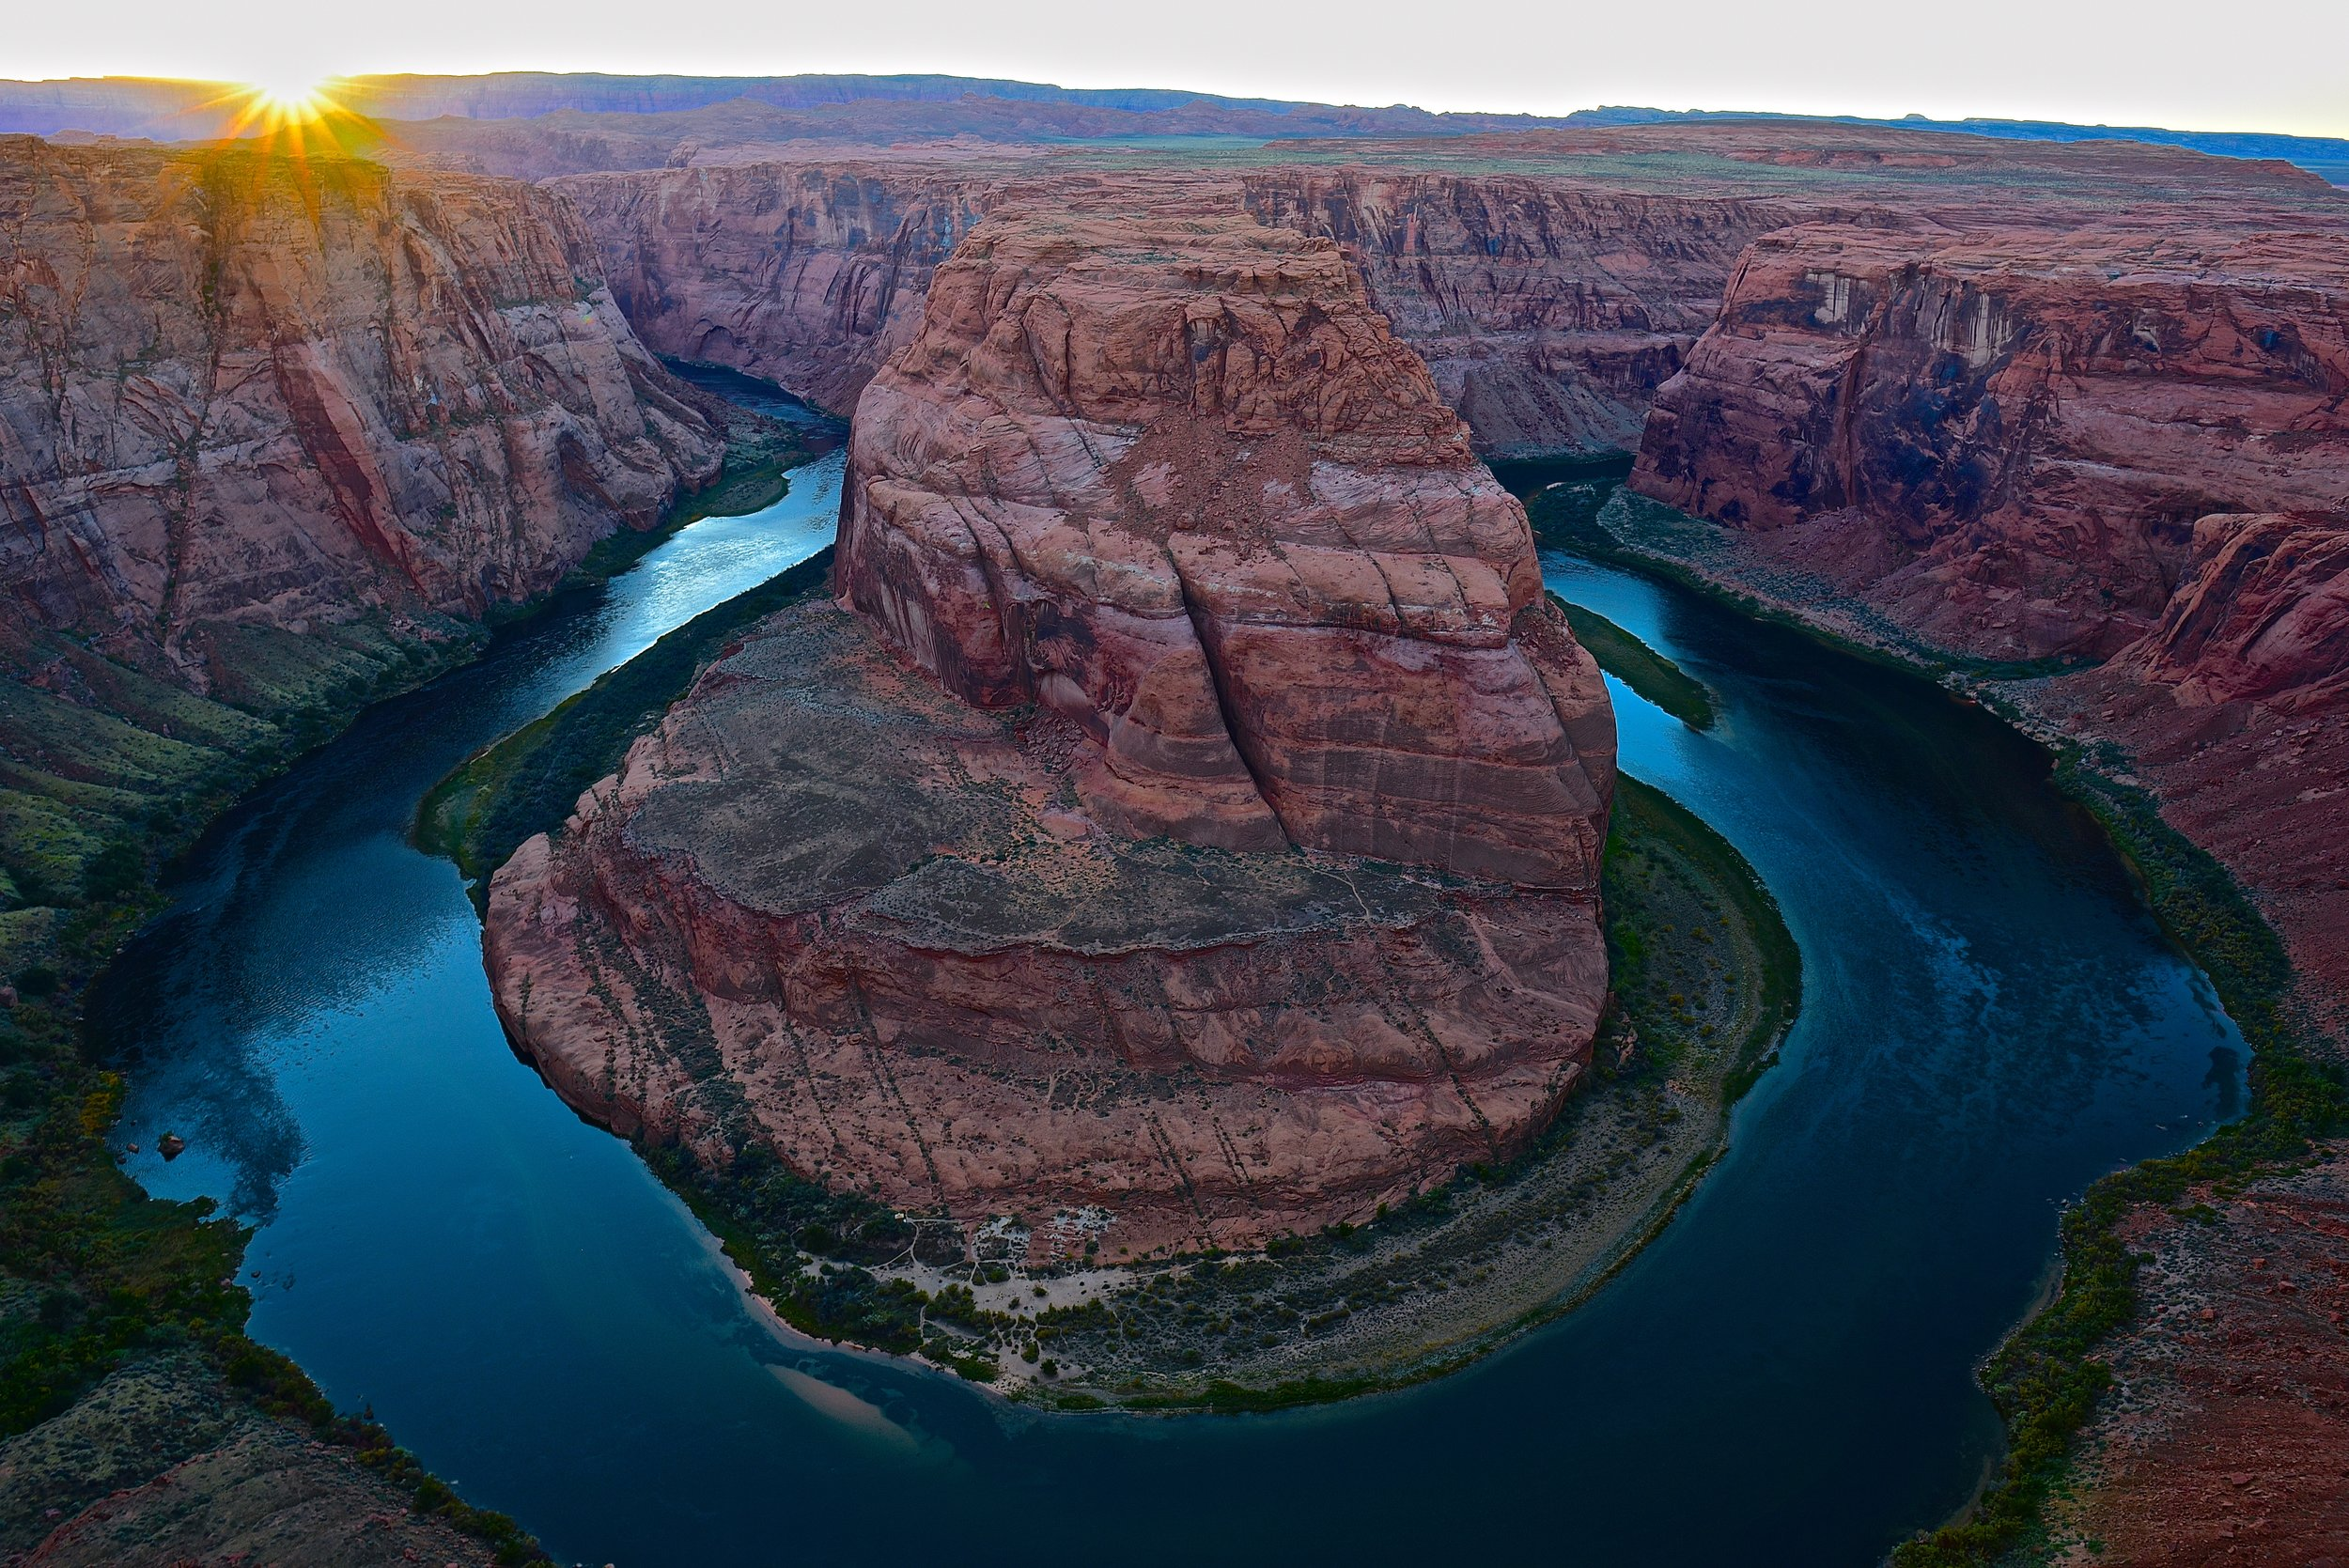 The sun bursting through just before it sets off in the horizon at Horseshoe Bend